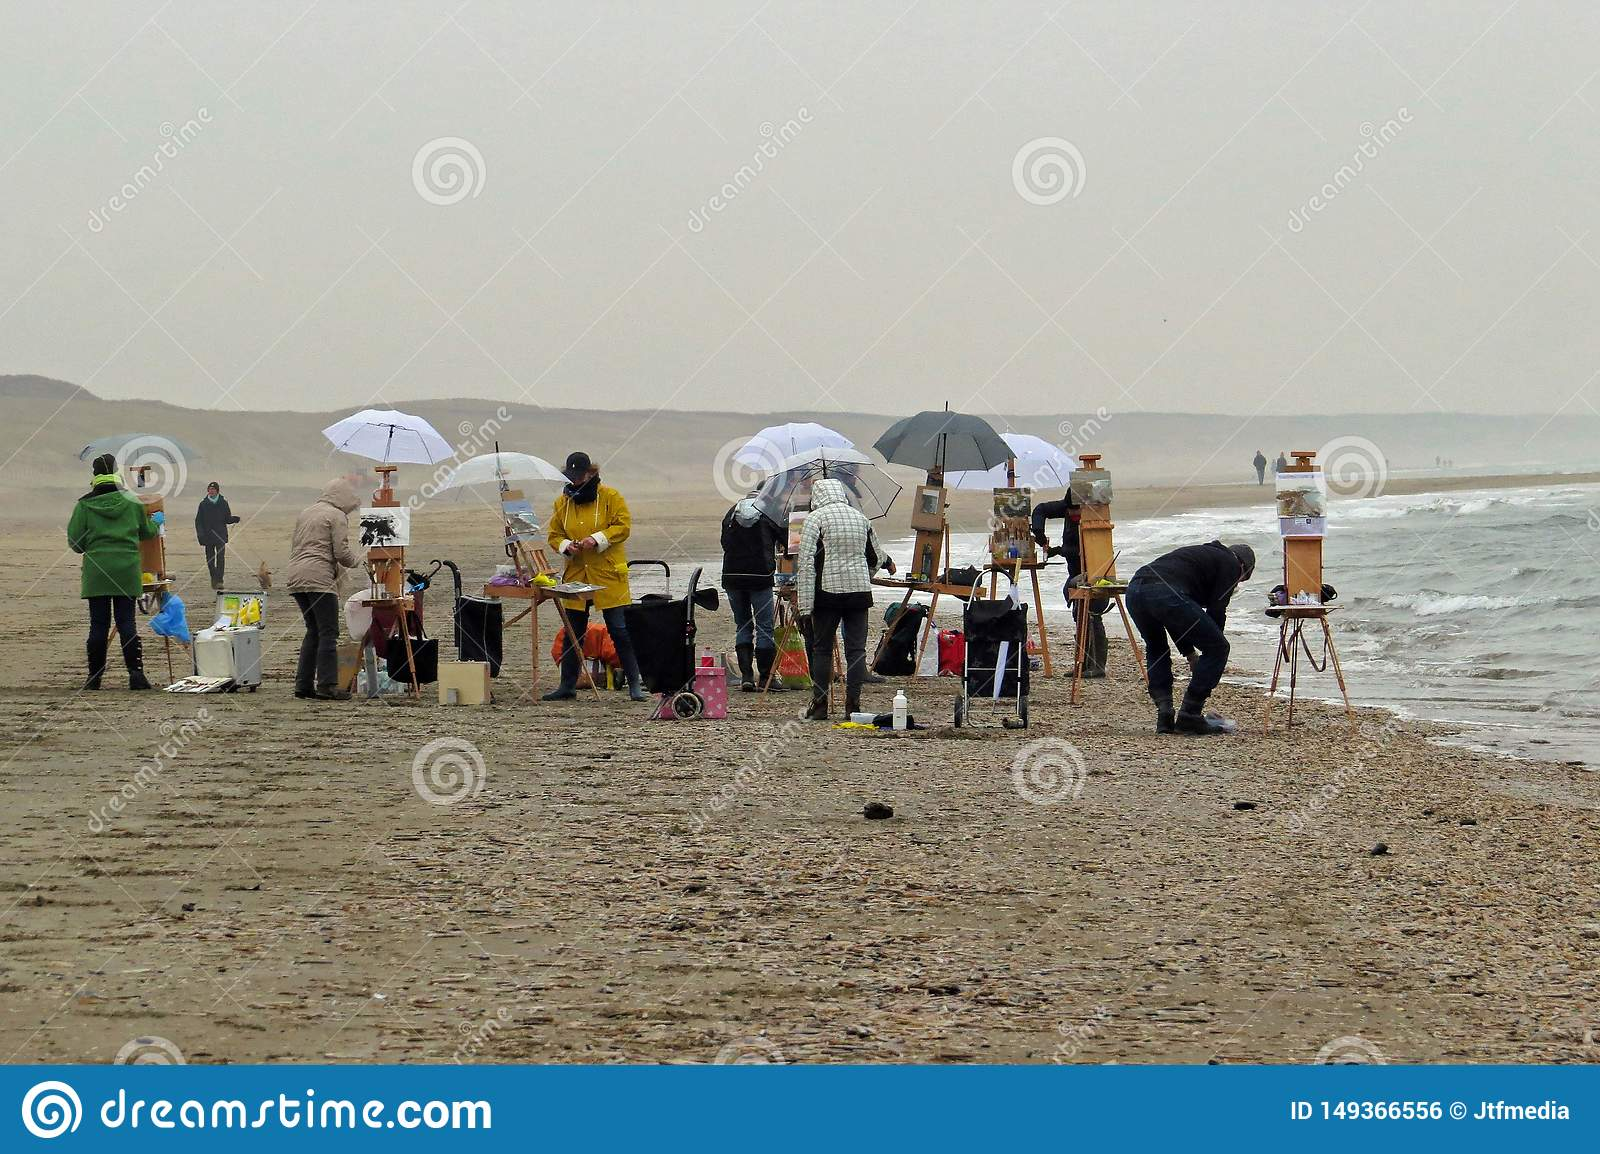 Painters / artists with their easels painting at the foggy beach in Katwijk, Netherlands